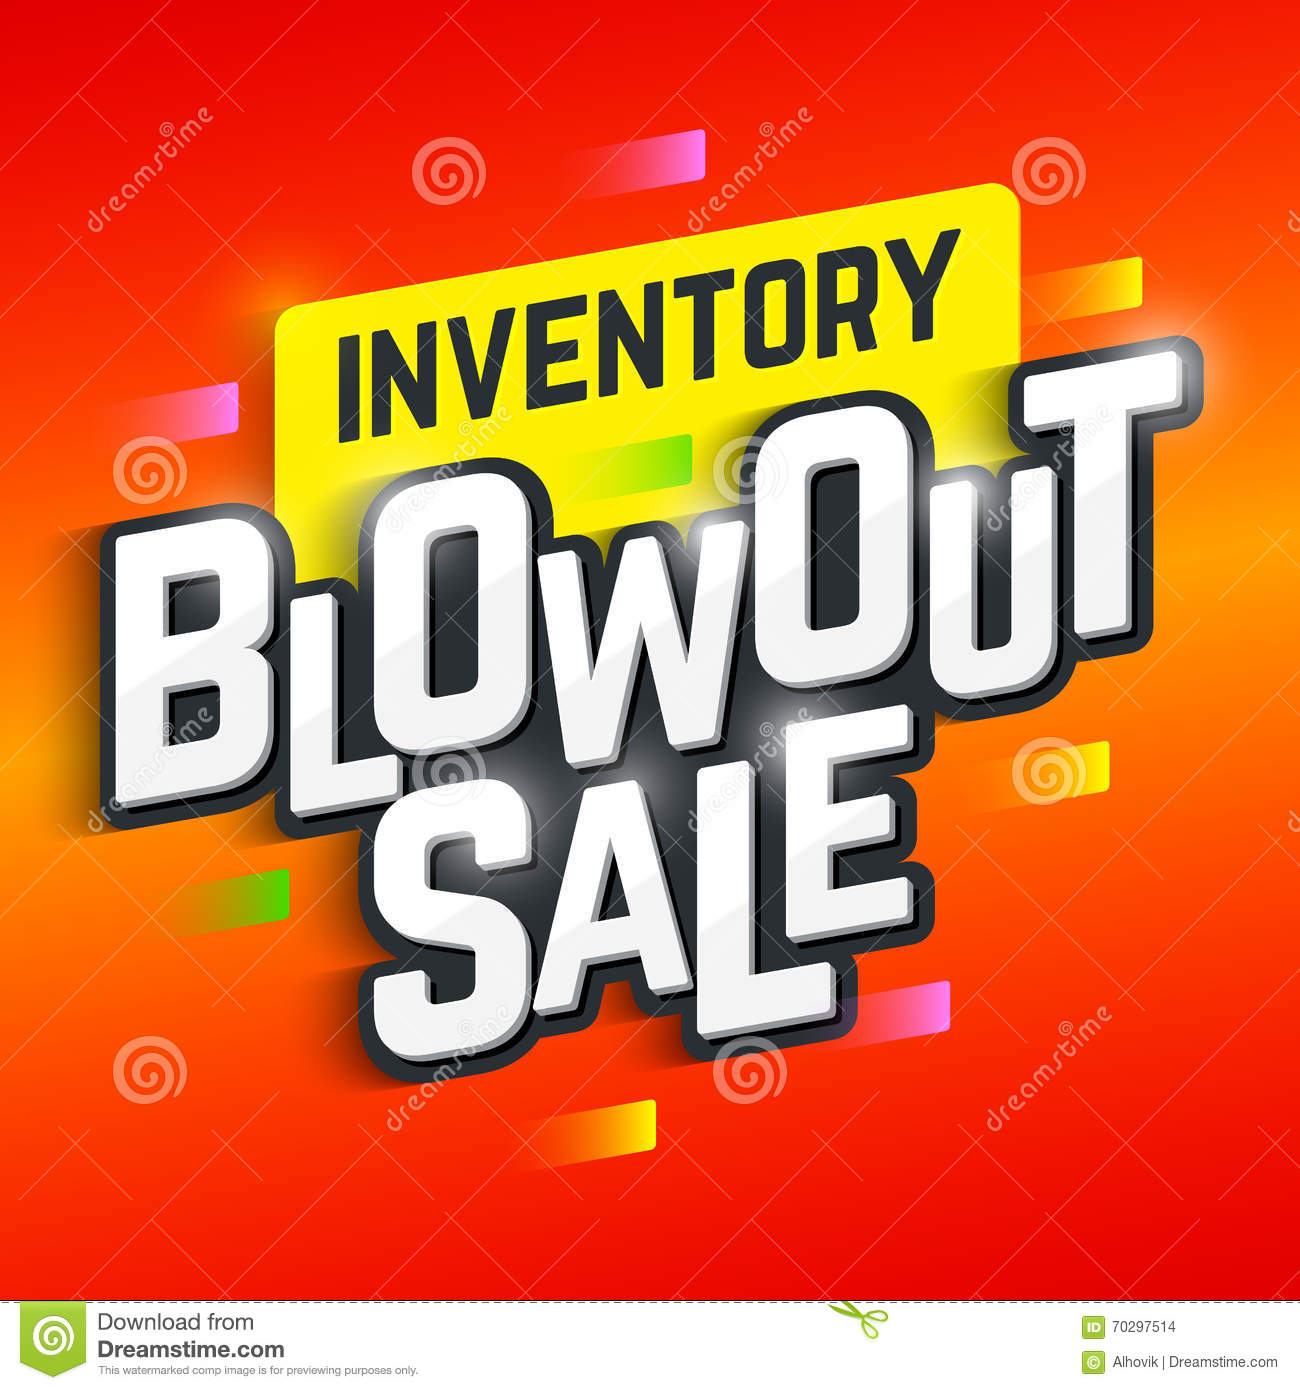 Inventory Blowout Sale Poster Stock Vector Image 70297514